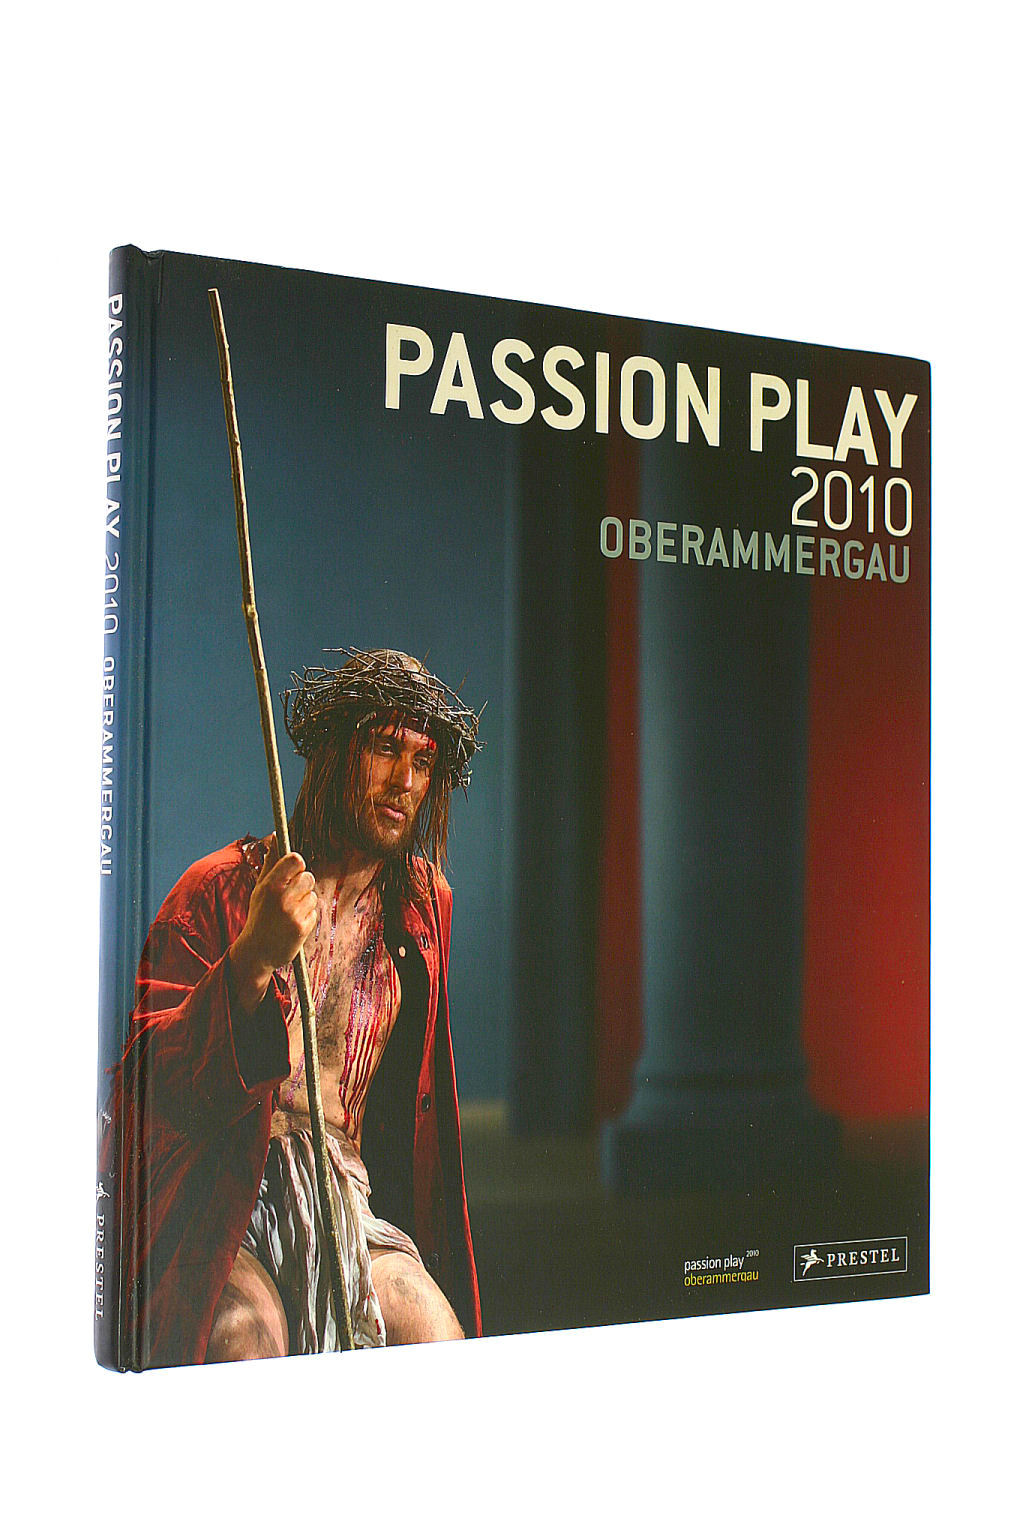 Image for Passion Play 2010 Oberammergau